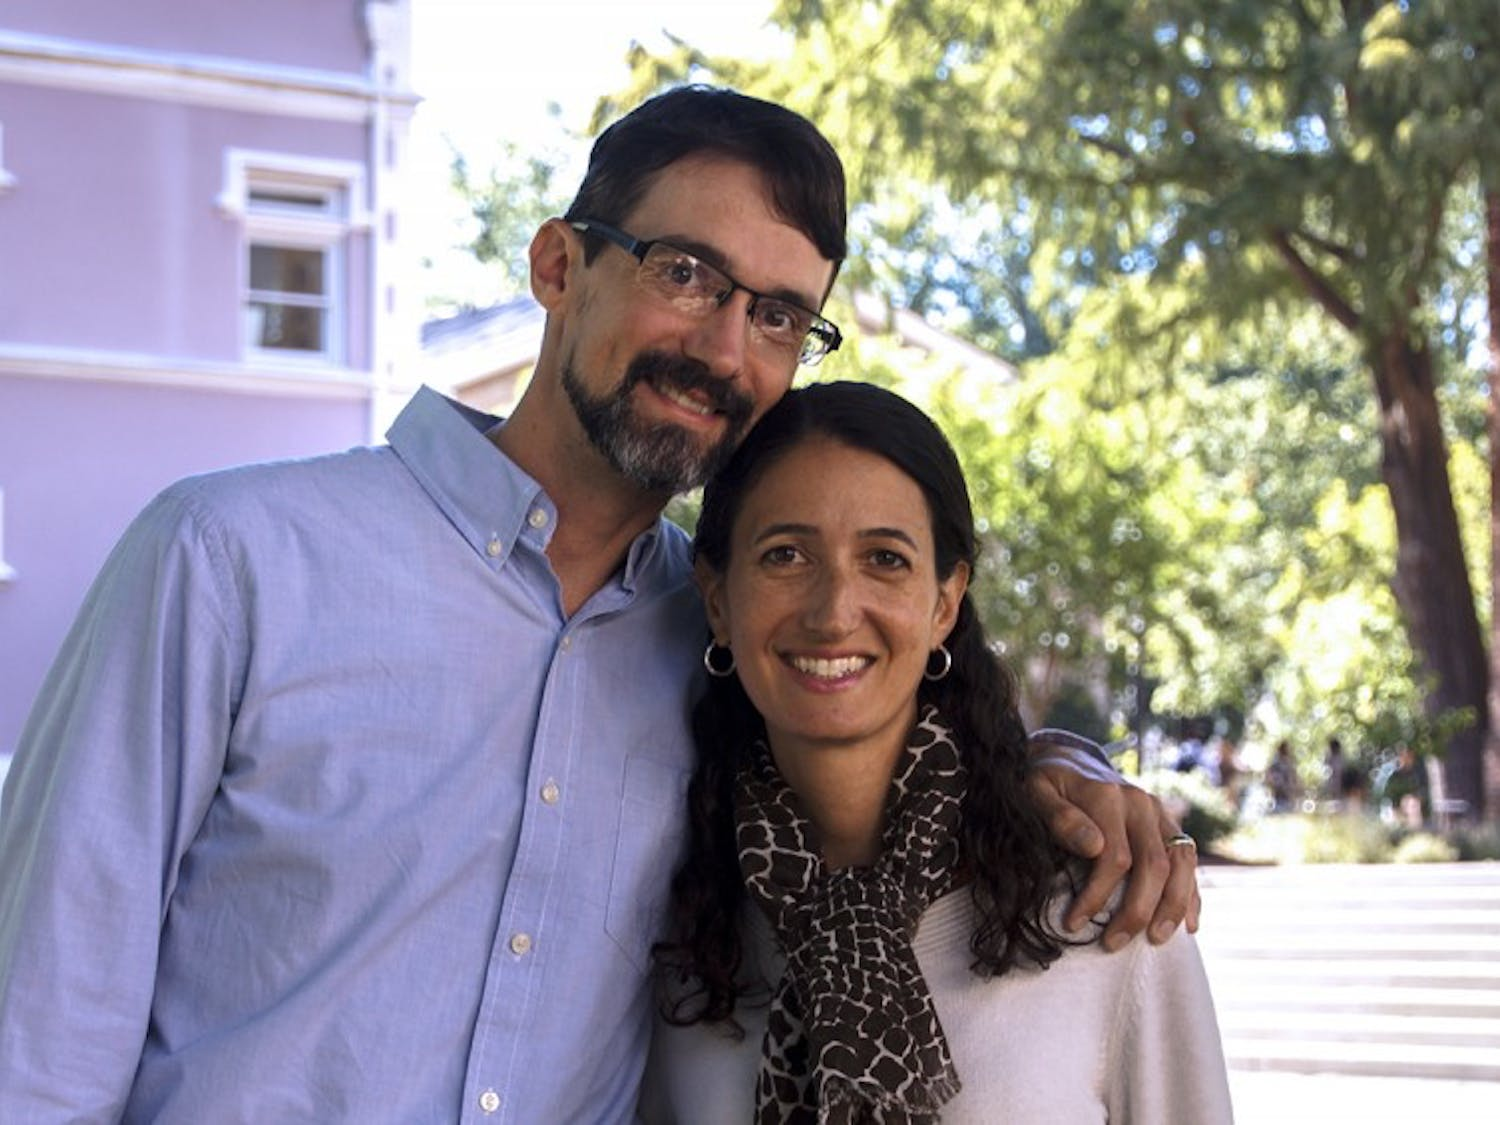 Brian Hogan, a chemistry professor, and Kelly Hogan, a biology professor, pose next to the Old Well. The Hogan's made a video for the 2015 UNC teaching awards.